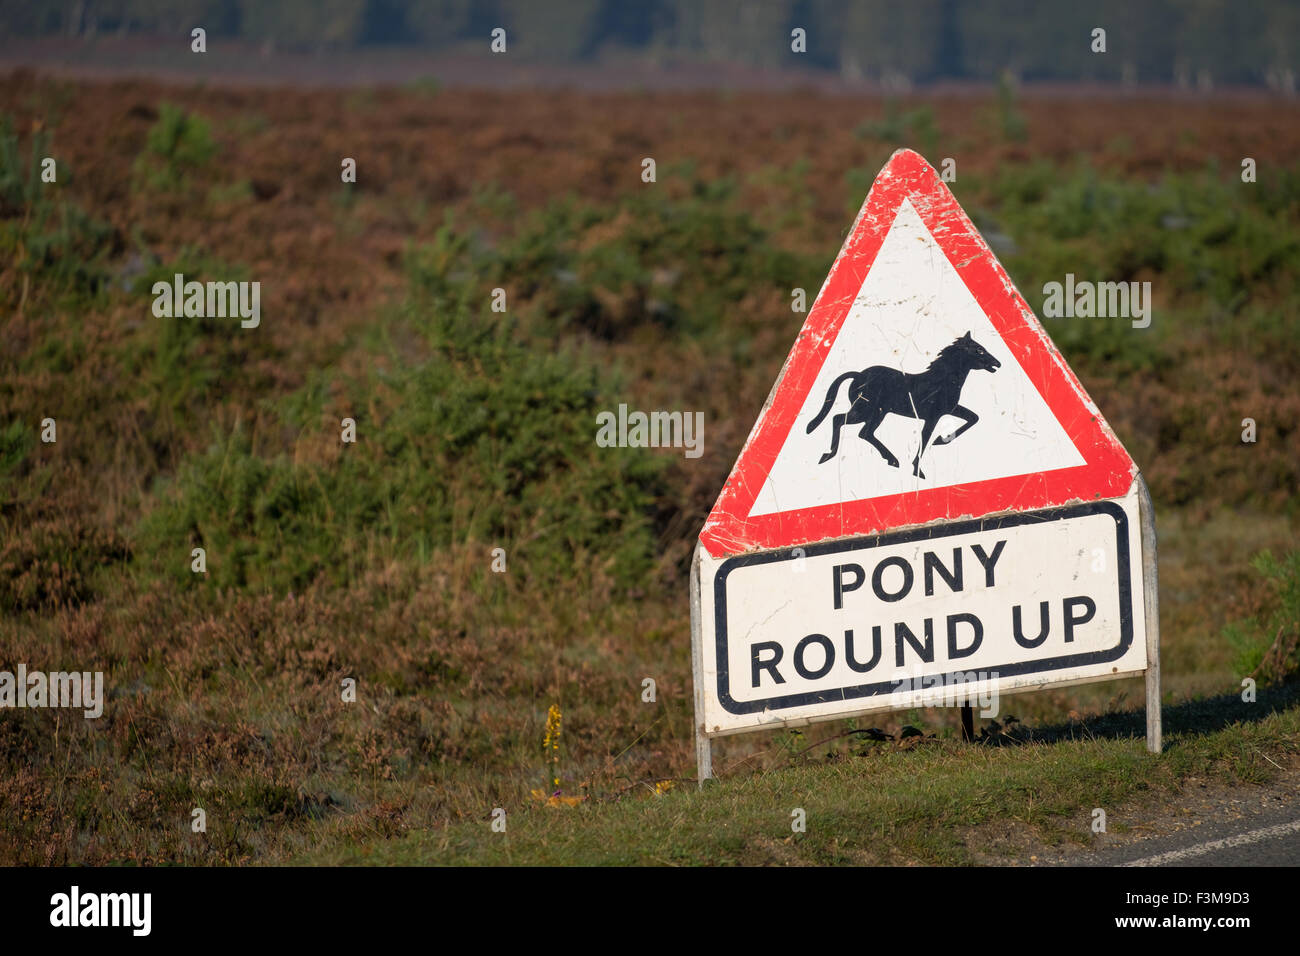 Pony round up caution road sign in the New Forest Hampshire UK - Stock Image